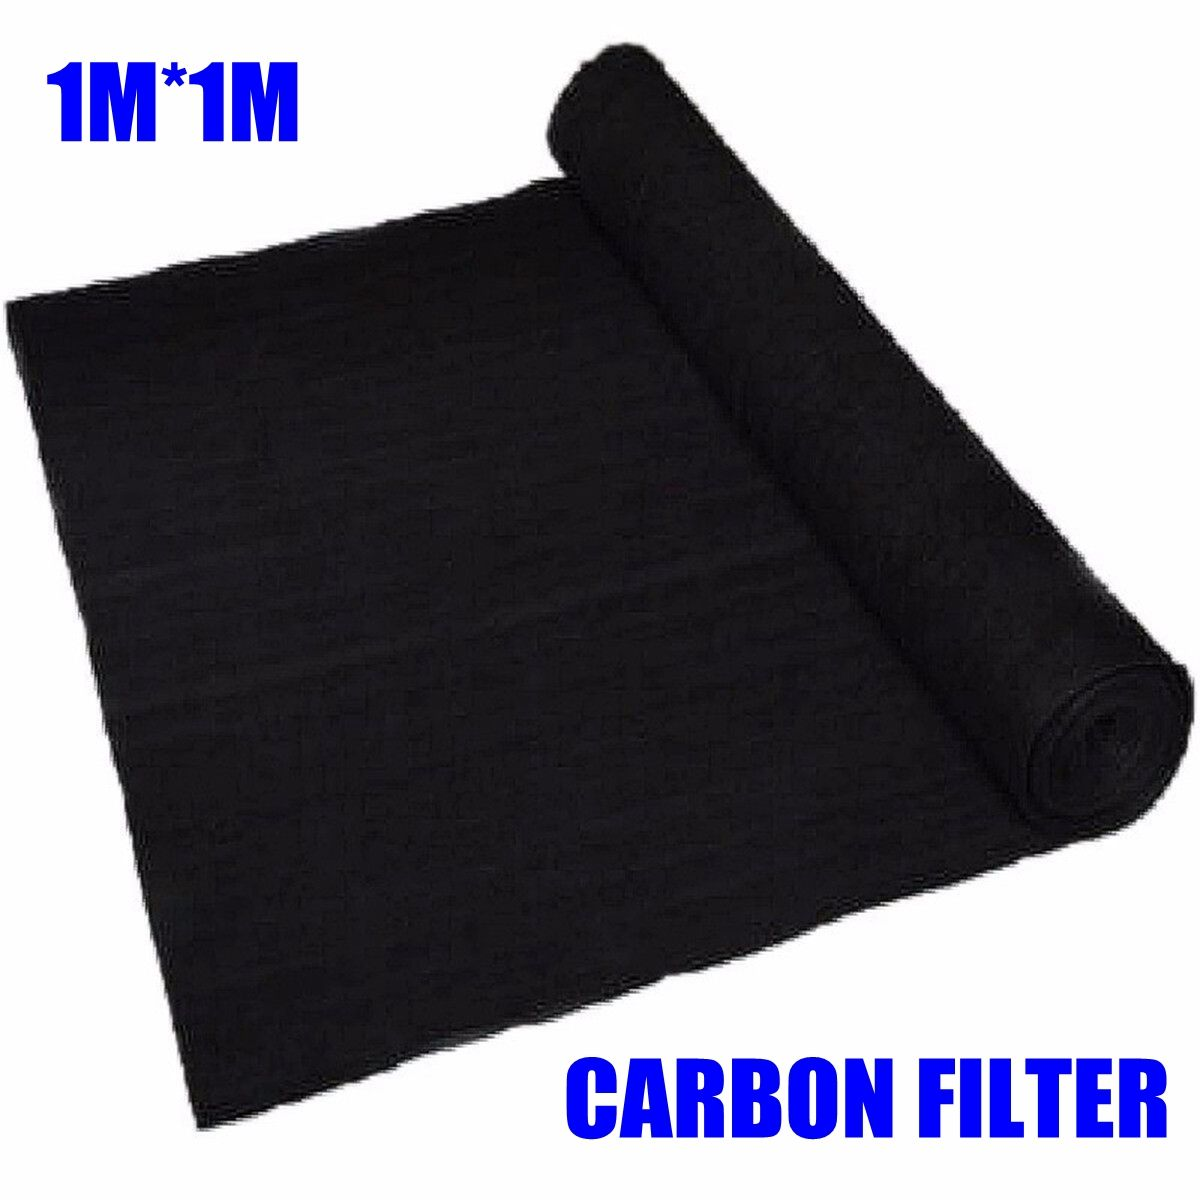 Hearty 1m*1m*3mm Thickness Air Conditioner Cloth Activated Carbon Hepa Purifier Pre Filter Covers Fabric Sheet Pad